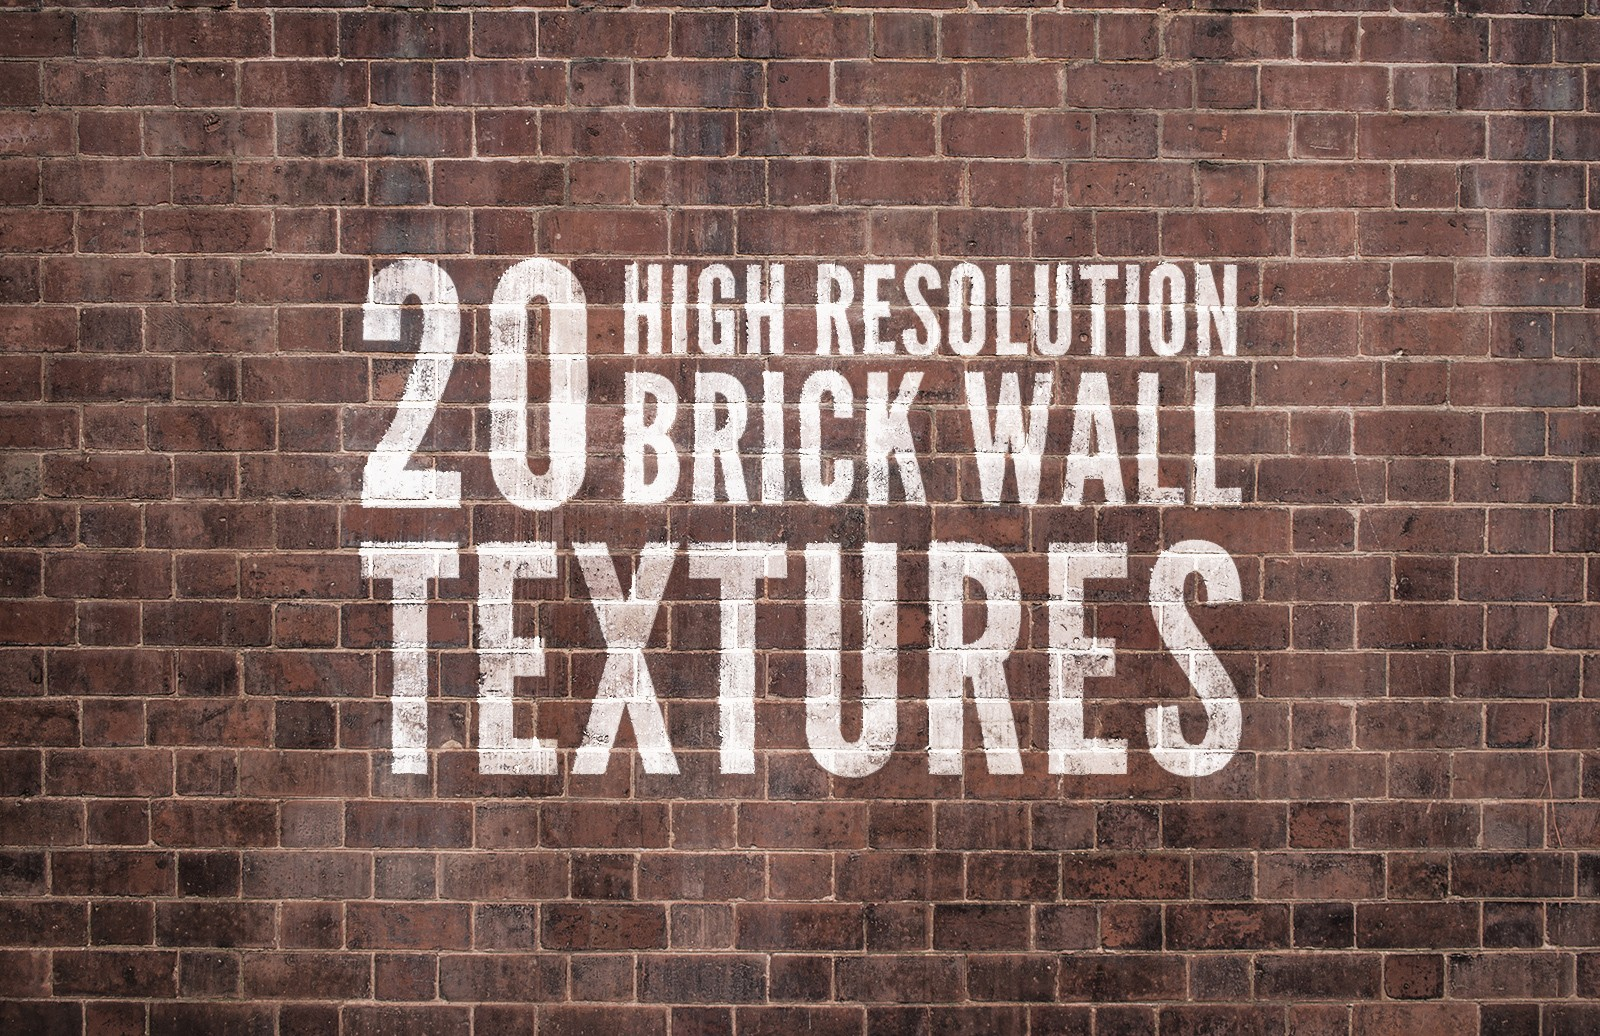 20 High Resolution Brick Wall Textures Preview 1